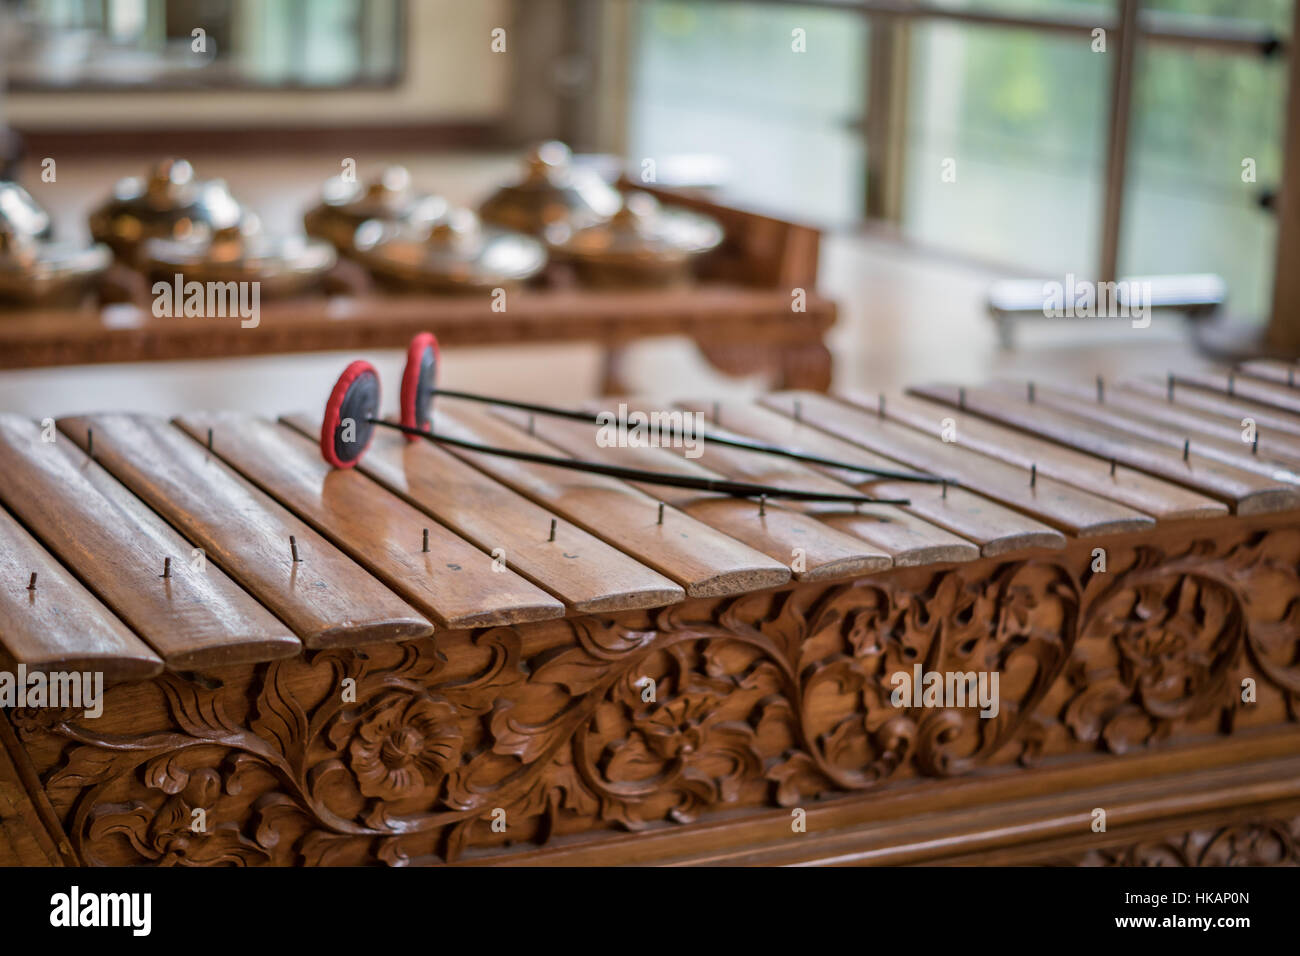 Saron, a gamelan music instrument, a traditional music in Bali and Jawa. Stock Photo